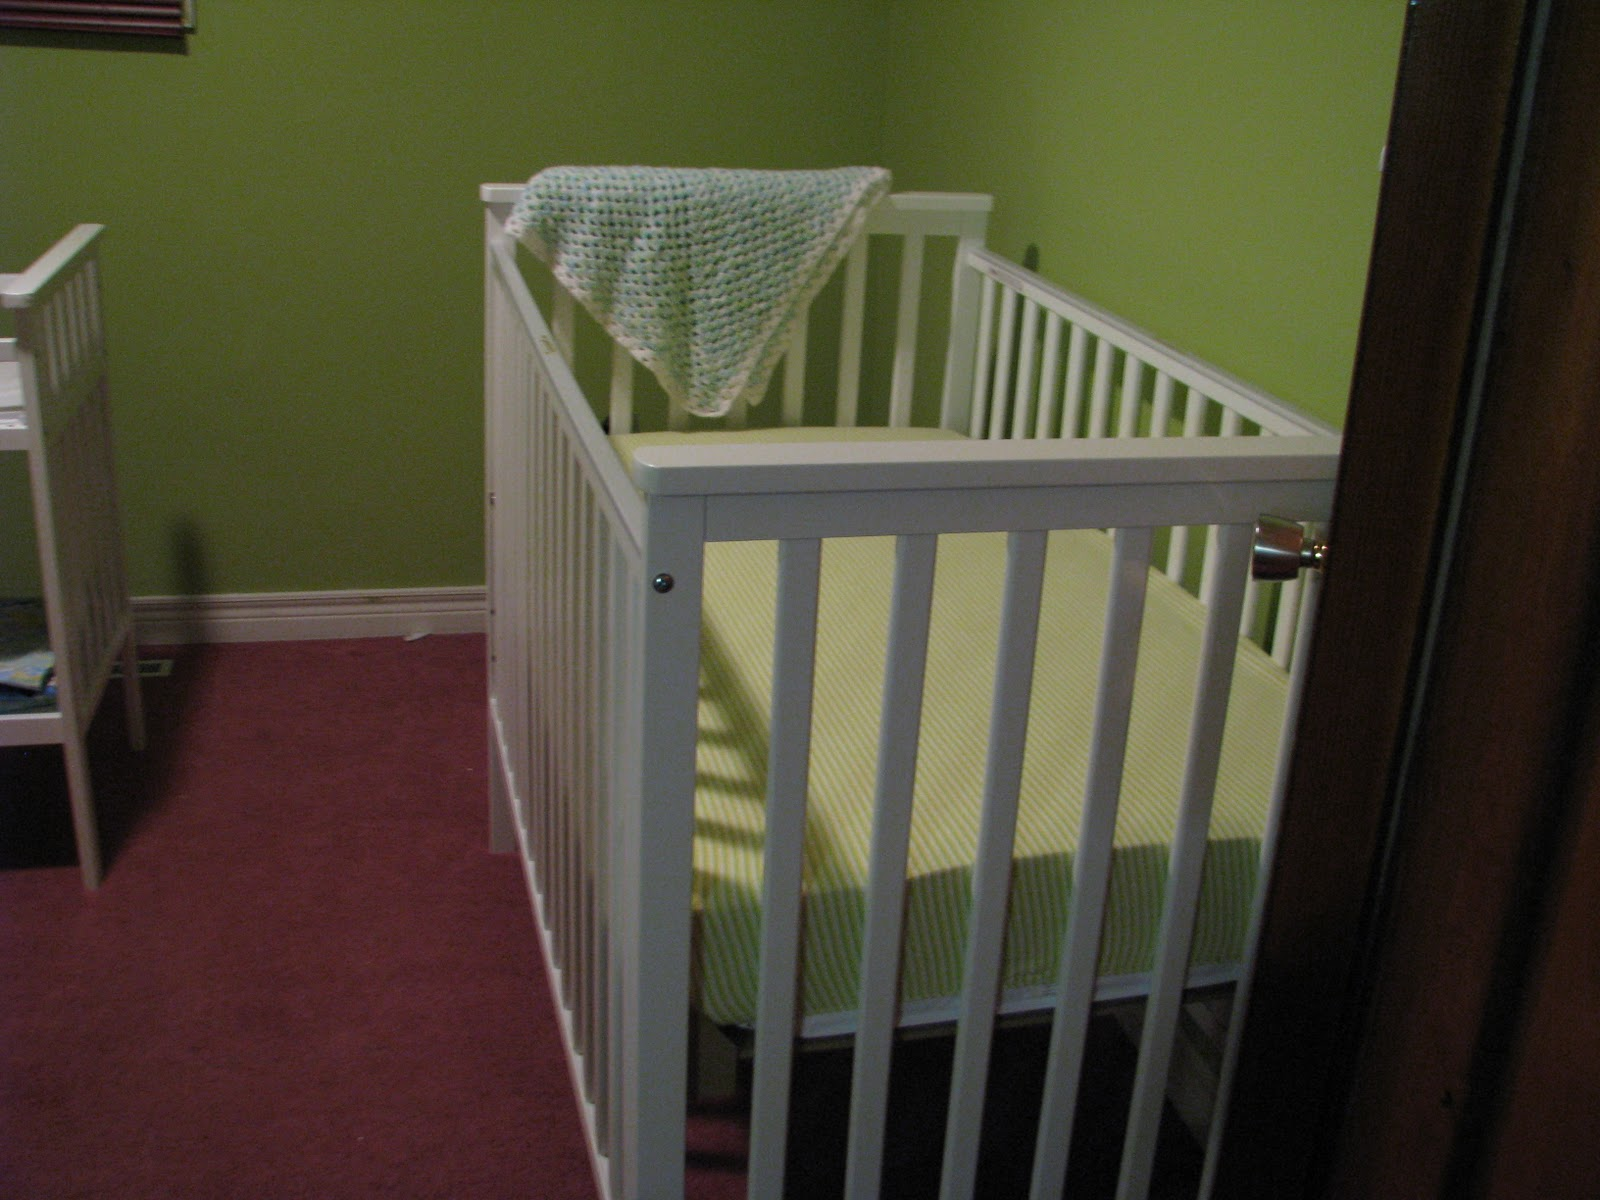 ... Baby I Didnu0027t Want A Convertible Crib. It Has 3 Heights You Can Adjust  The Crib To. It Also Has A Teething Rail On The Side. Overall A Good Solid  Basic ...